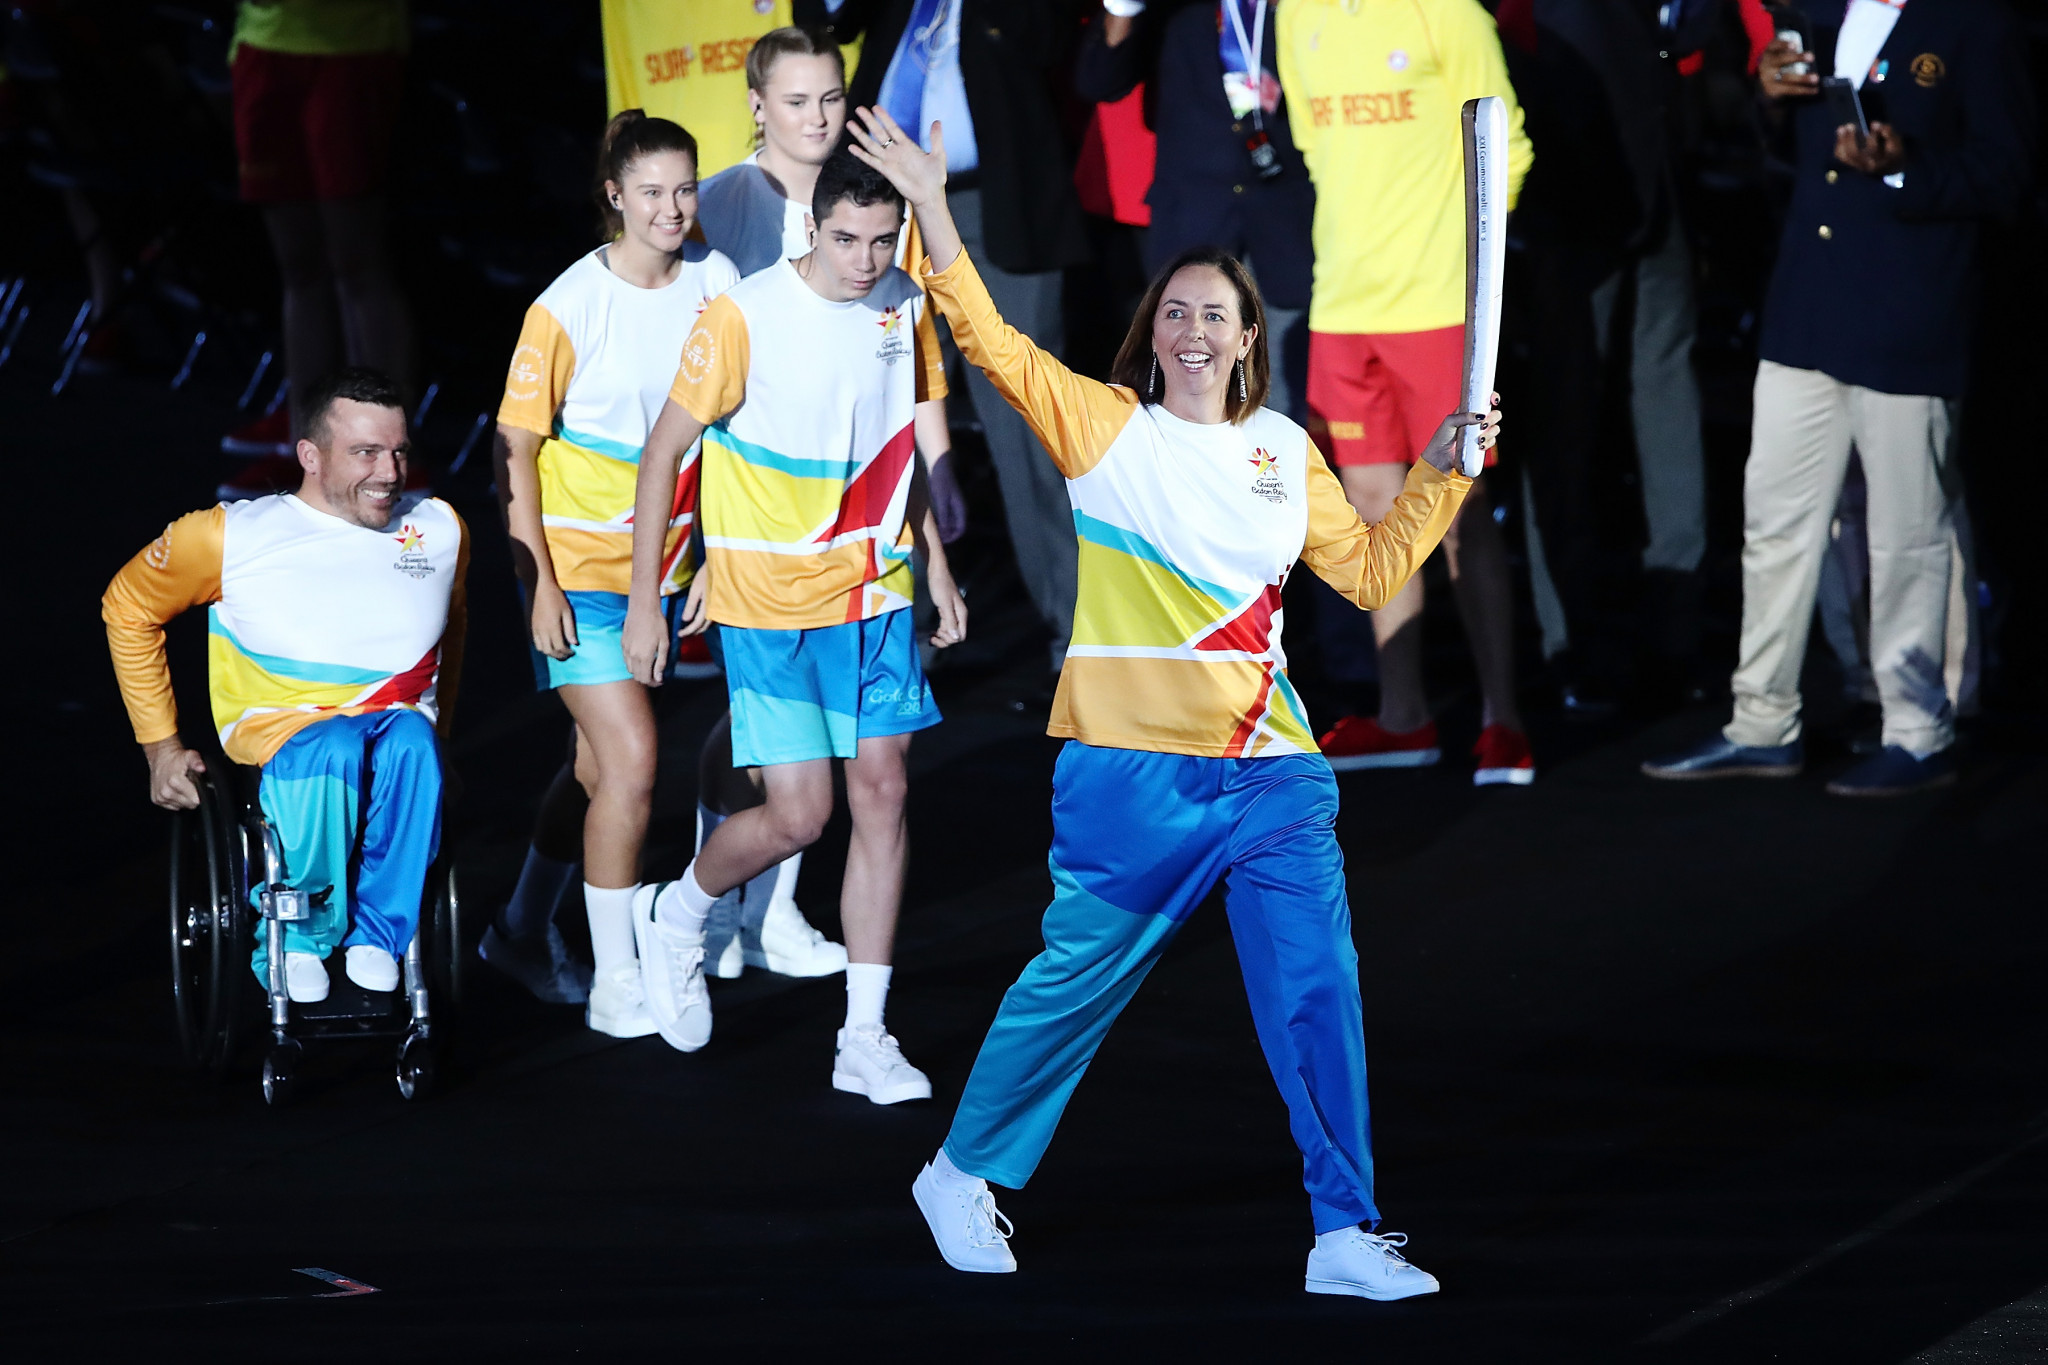 Netballer Liz Ellis showcases The Queen's Baton during the Opening Ceremony for the Gold Coast 2018 Commonwealth Games at Carrara Stadium ©Getty Images